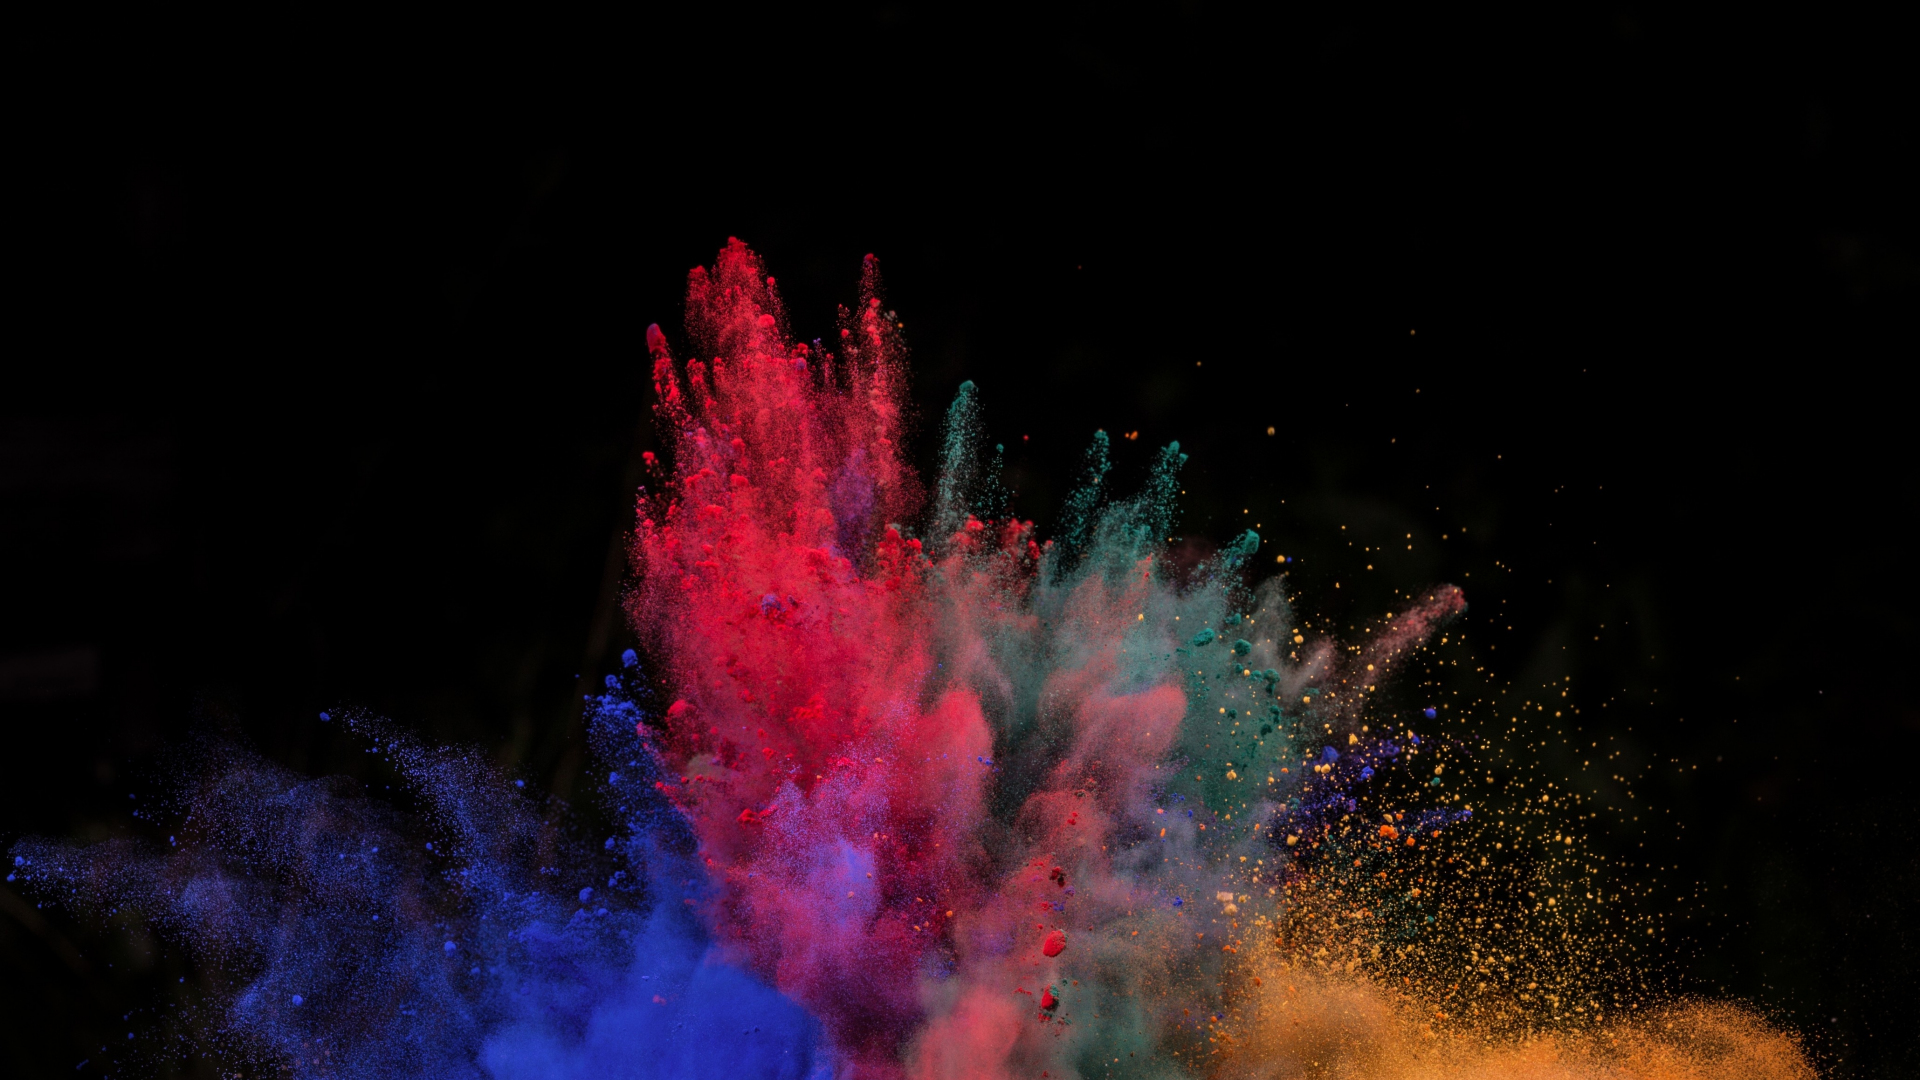 Download 1920x1080 wallpaper color explosion powder 39 s blast full hd hdtv fhd 1080p - 1366x768 is 720p or 1080p ...